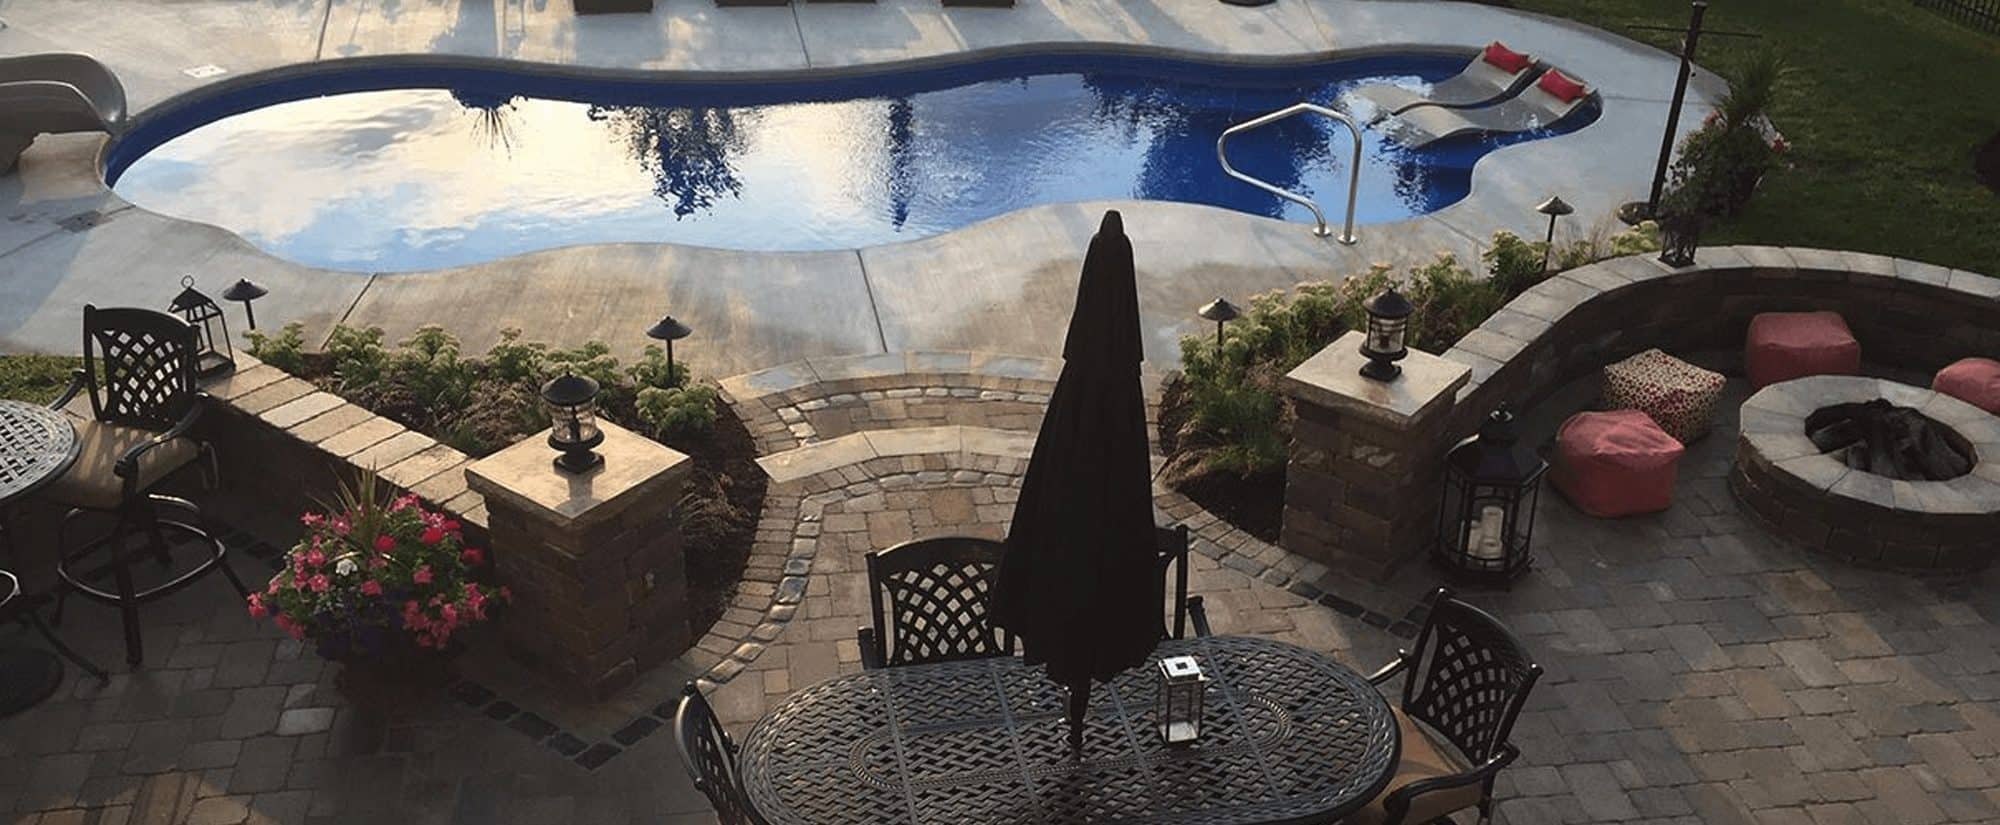 Building Pools in Indianapolis and Surrounding Areas